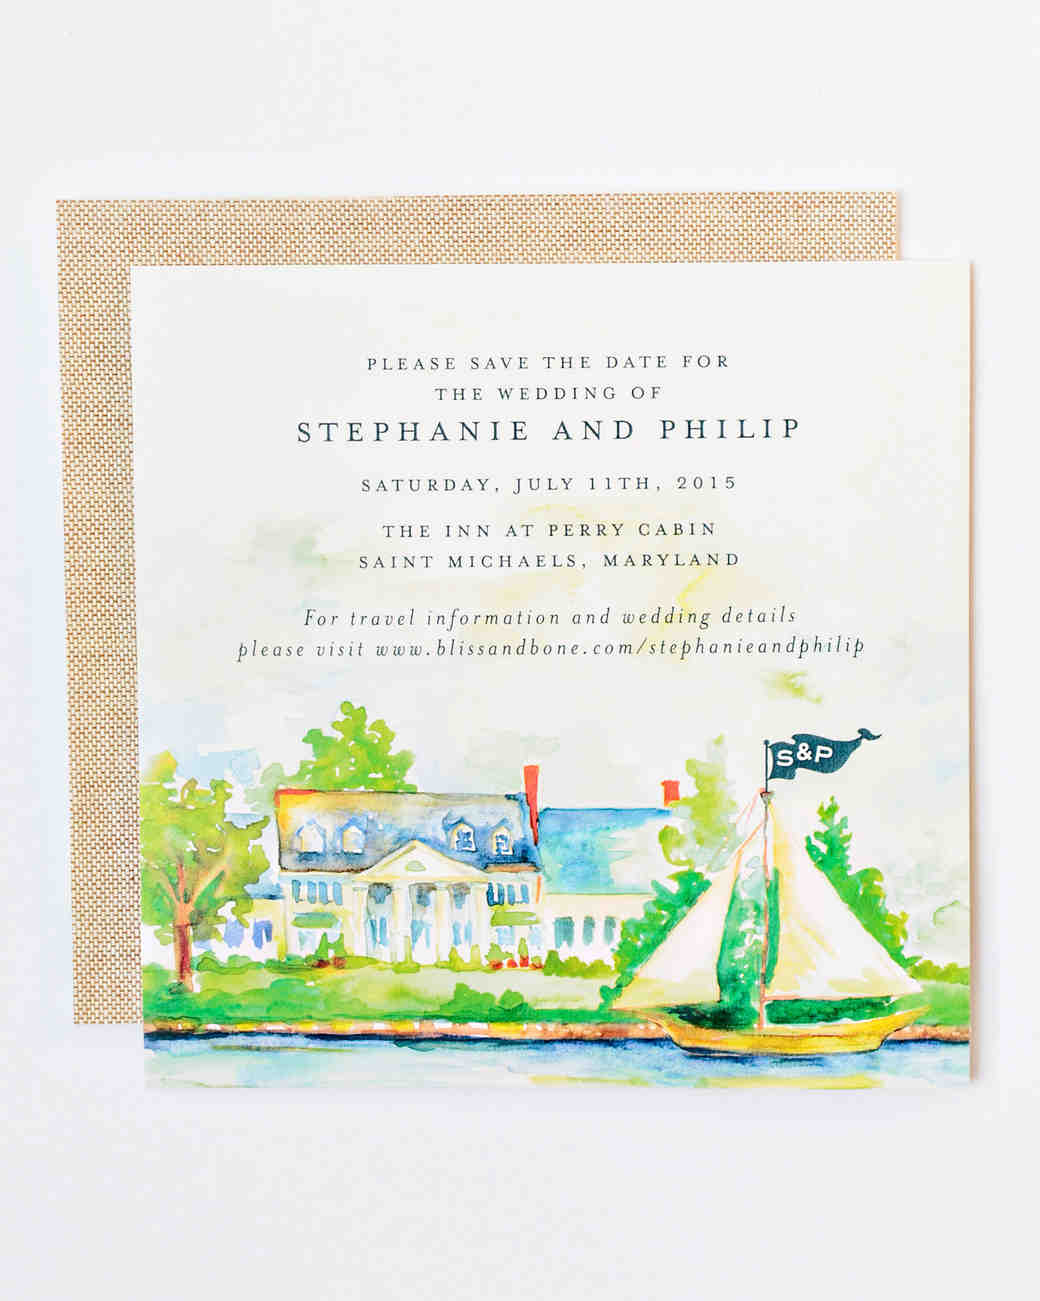 stephanie philip wedding maryland watercolor save the date